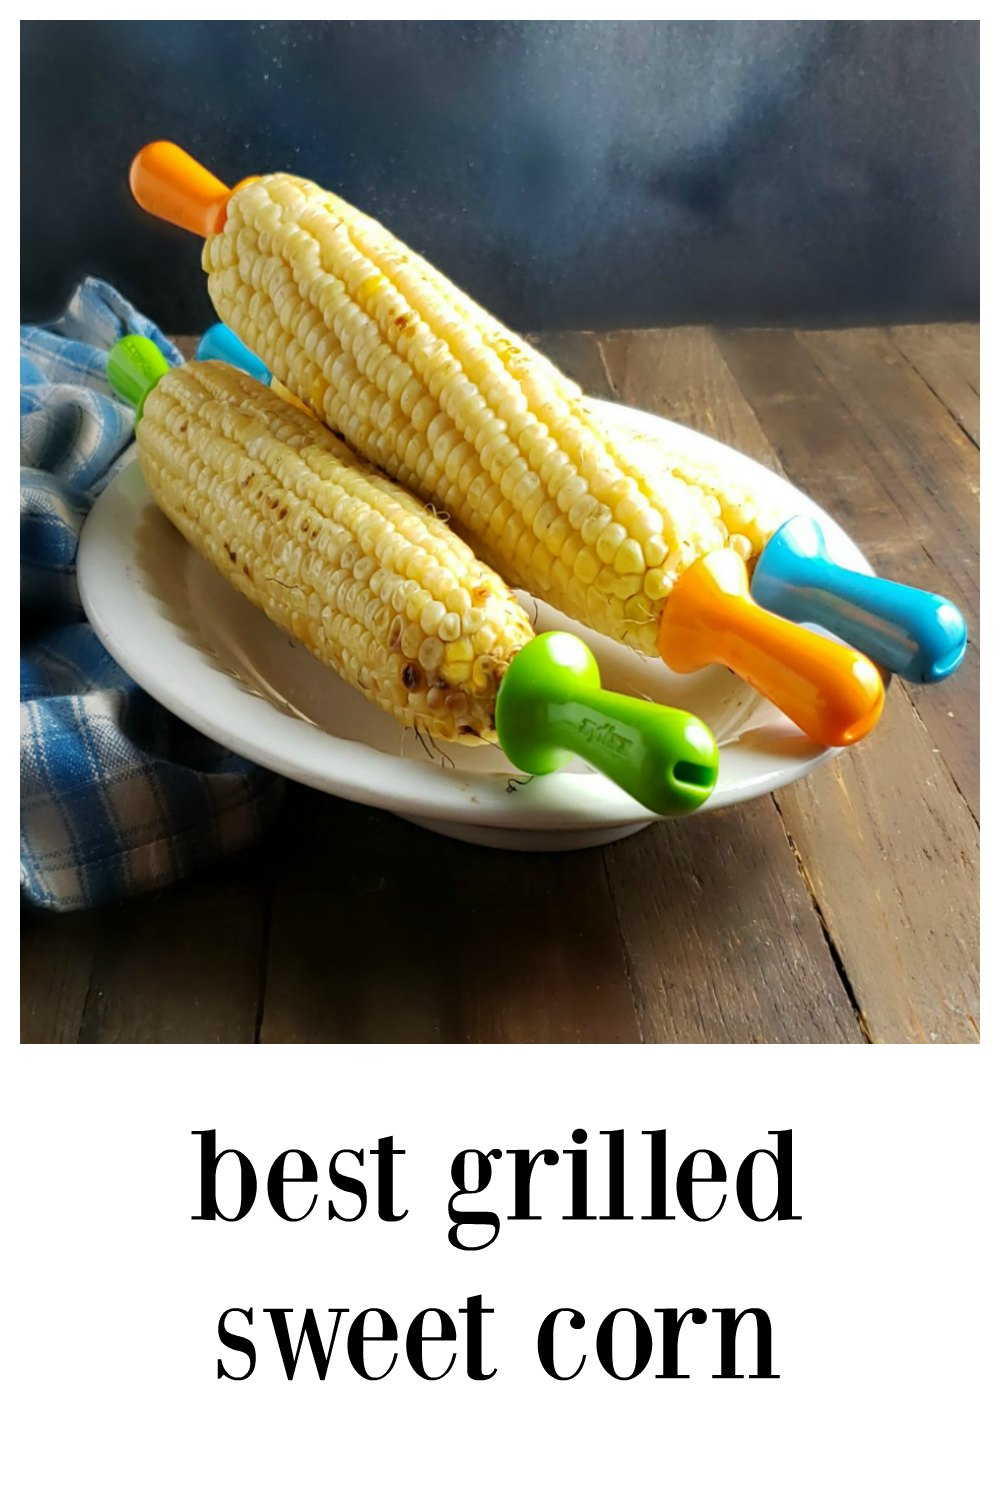 Best Grilled Sweet Corn - there is a little secret and its soo easy! Beautiful, smoky, tender sweet corn is in reach, even on the grill. No more chewy grilled corn #SweetCorn #GrilledSweetCorn #SweetCornOnTheGrill, #BrinedSweetCorn #GrilledCorn